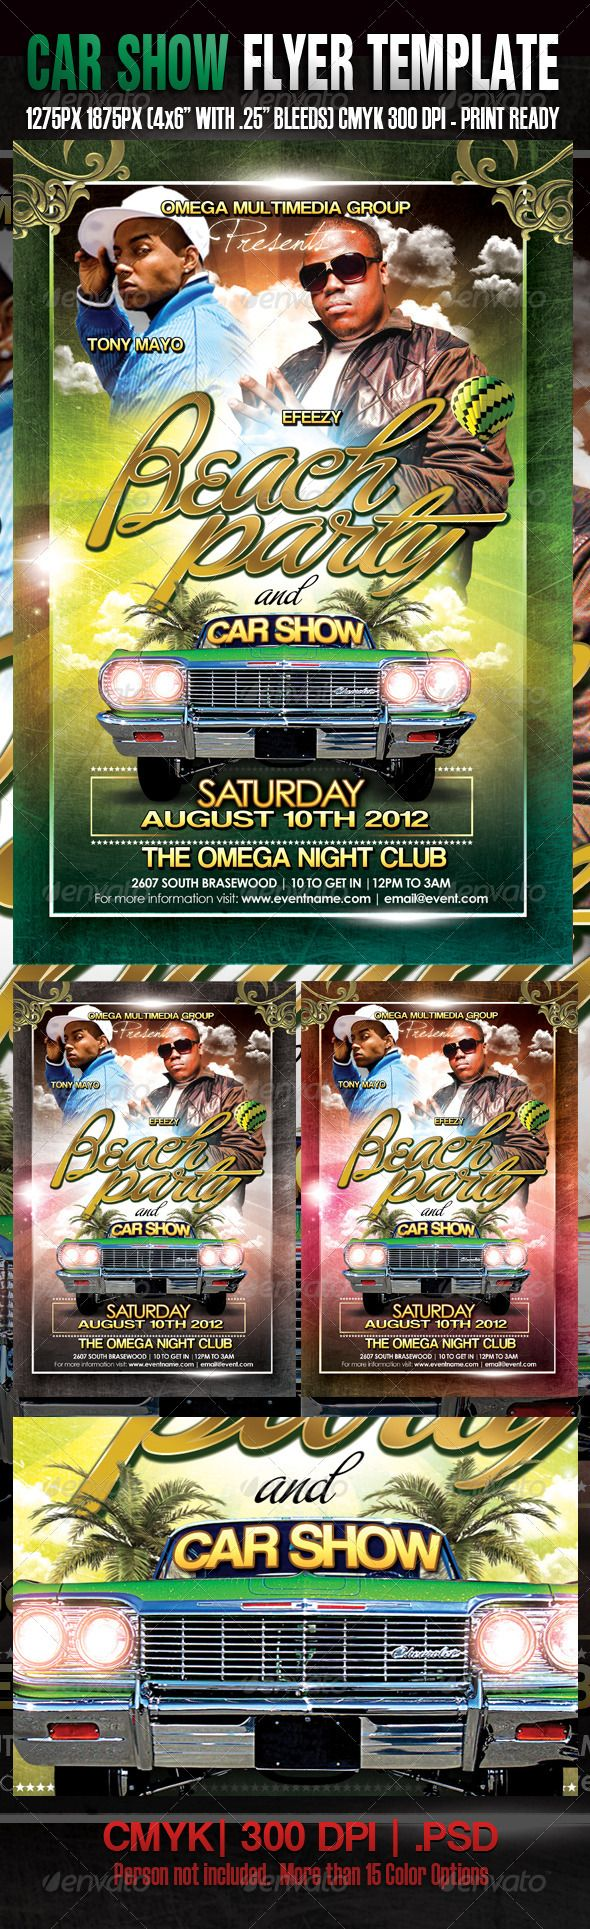 Beach Party And Car Show Template  Print Templates Flyer